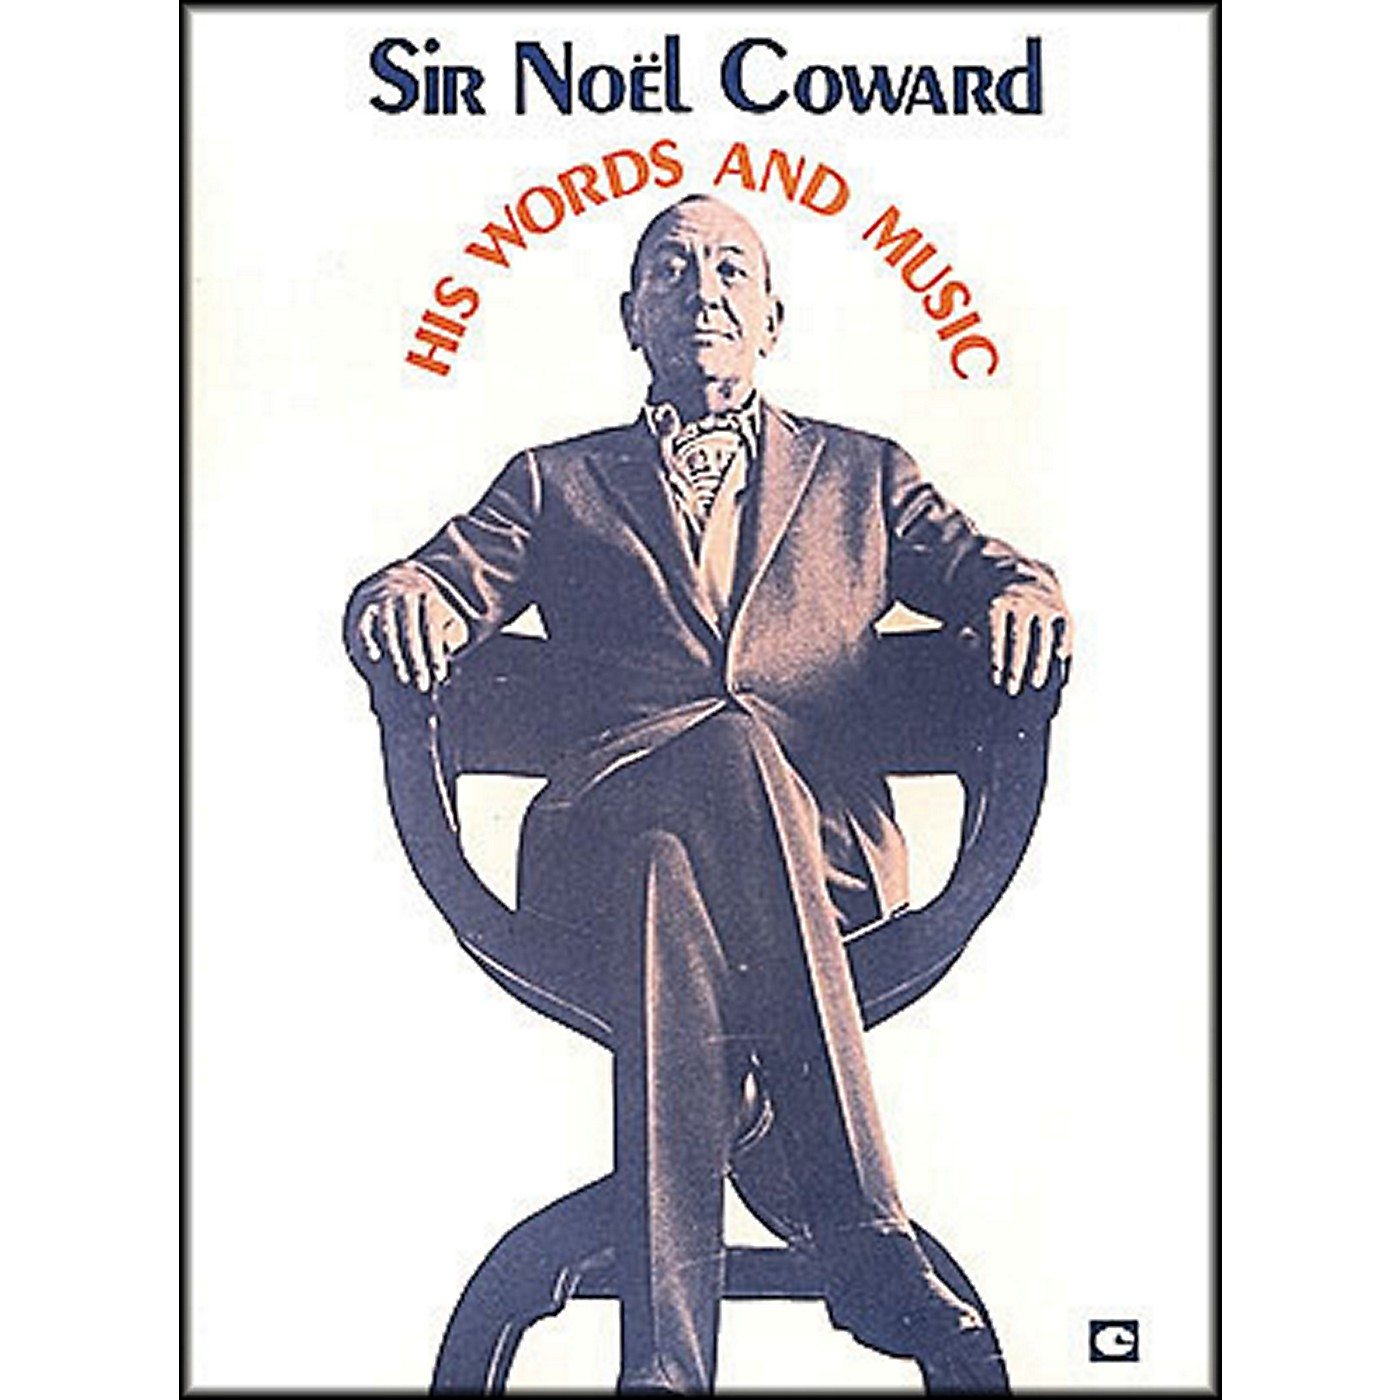 Hal Leonard Sir Noel Coward His Words And Music Vol1 arranged for piano, vocal, and guitar (P/V/G) thumbnail